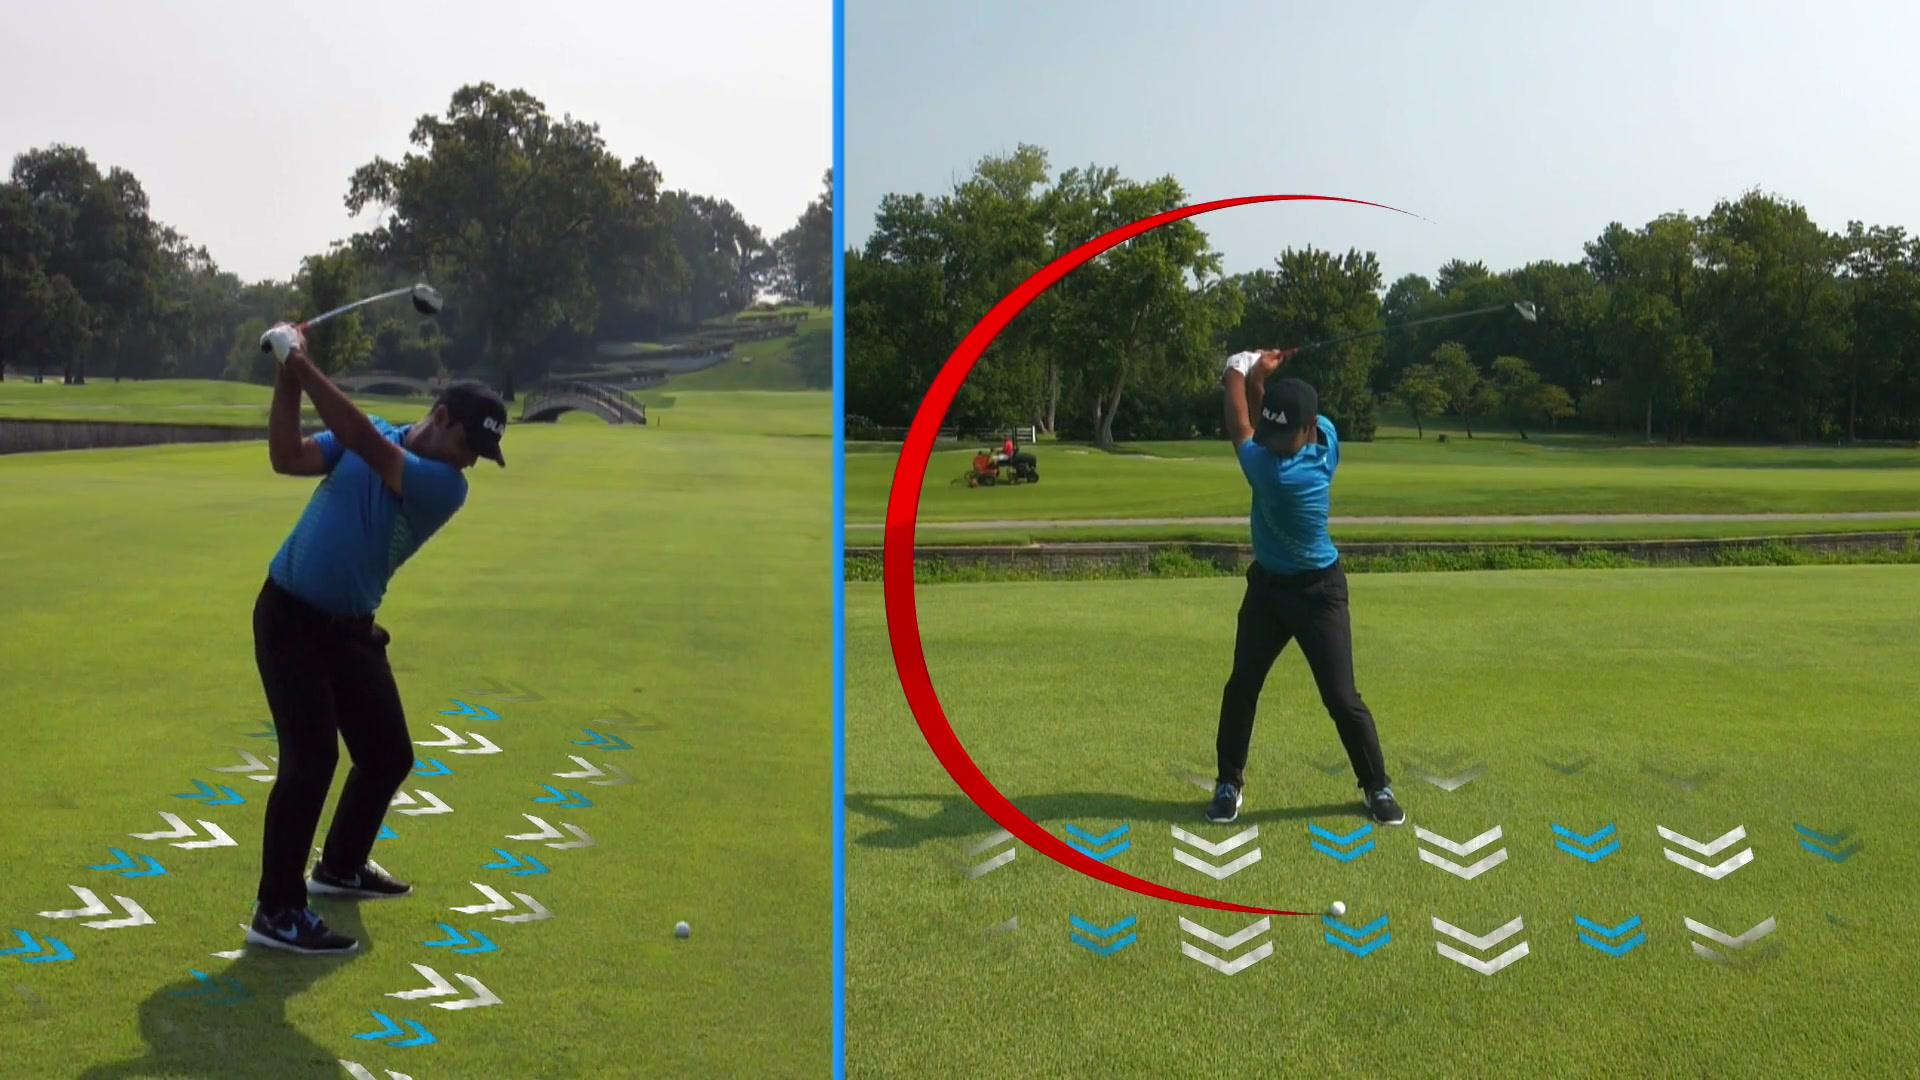 golf chipping tips & drills | golf channel